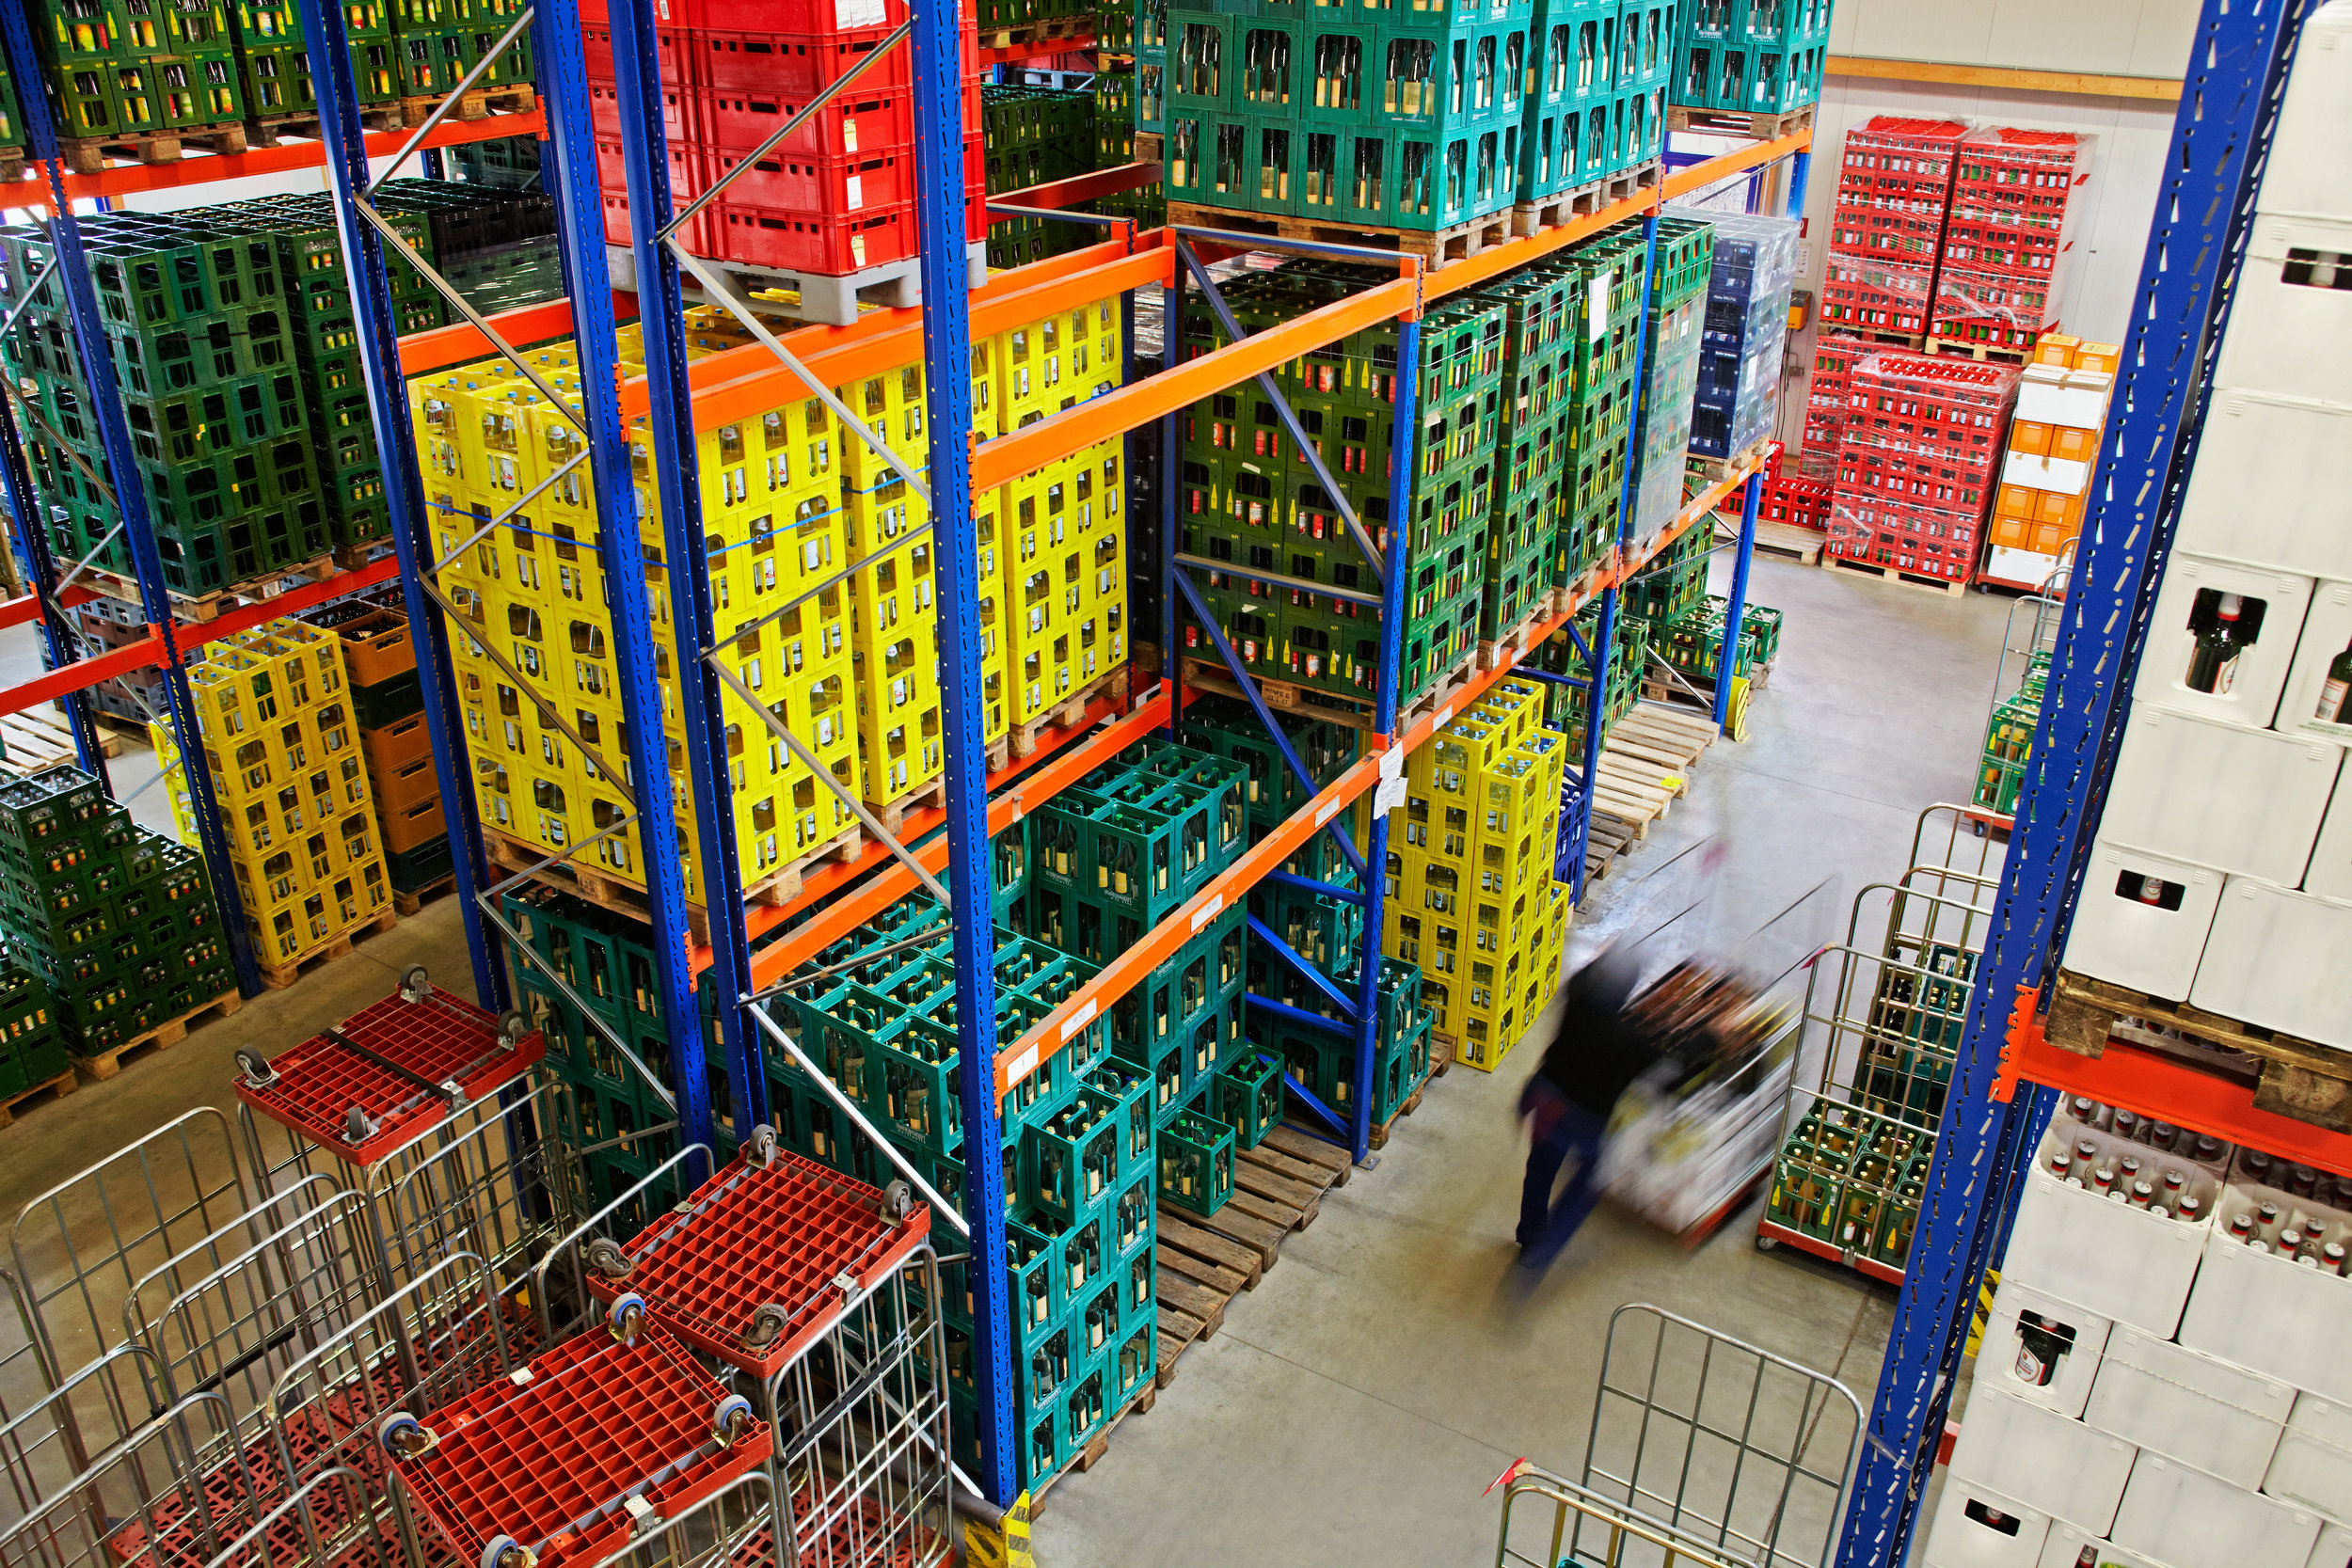 Food Supply Chain Technology: Increasing Warehouse IT